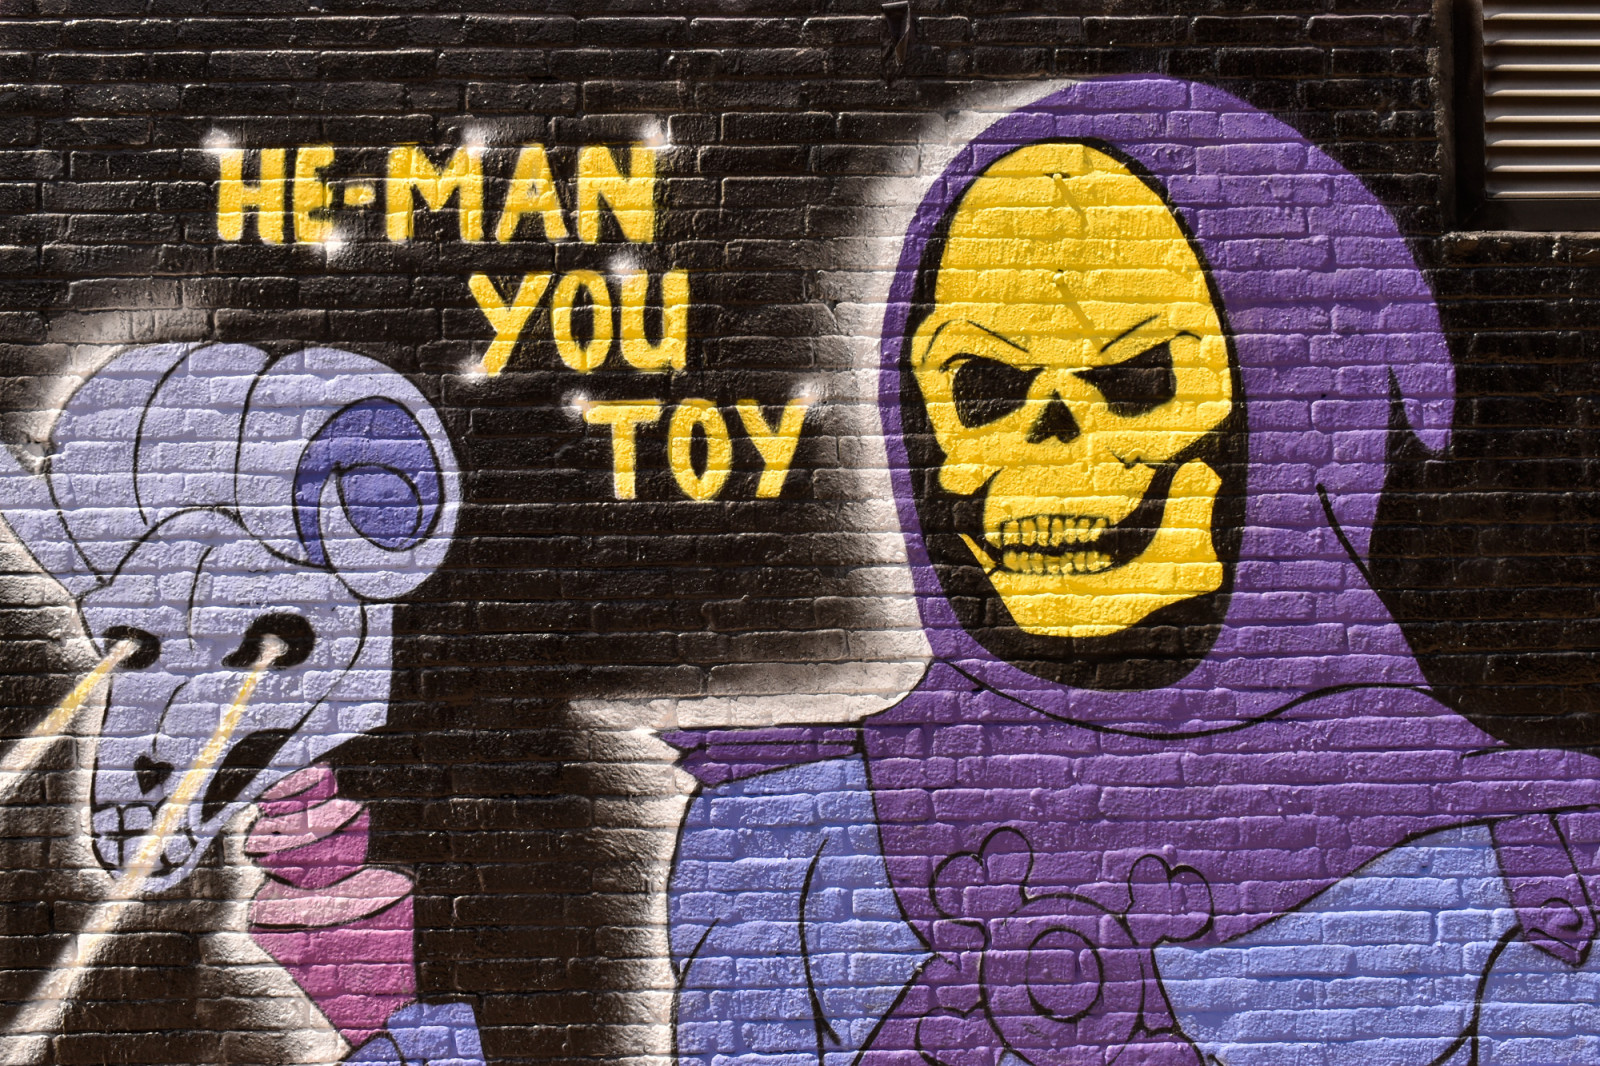 He-man you toy graffiti street art Amsterdam